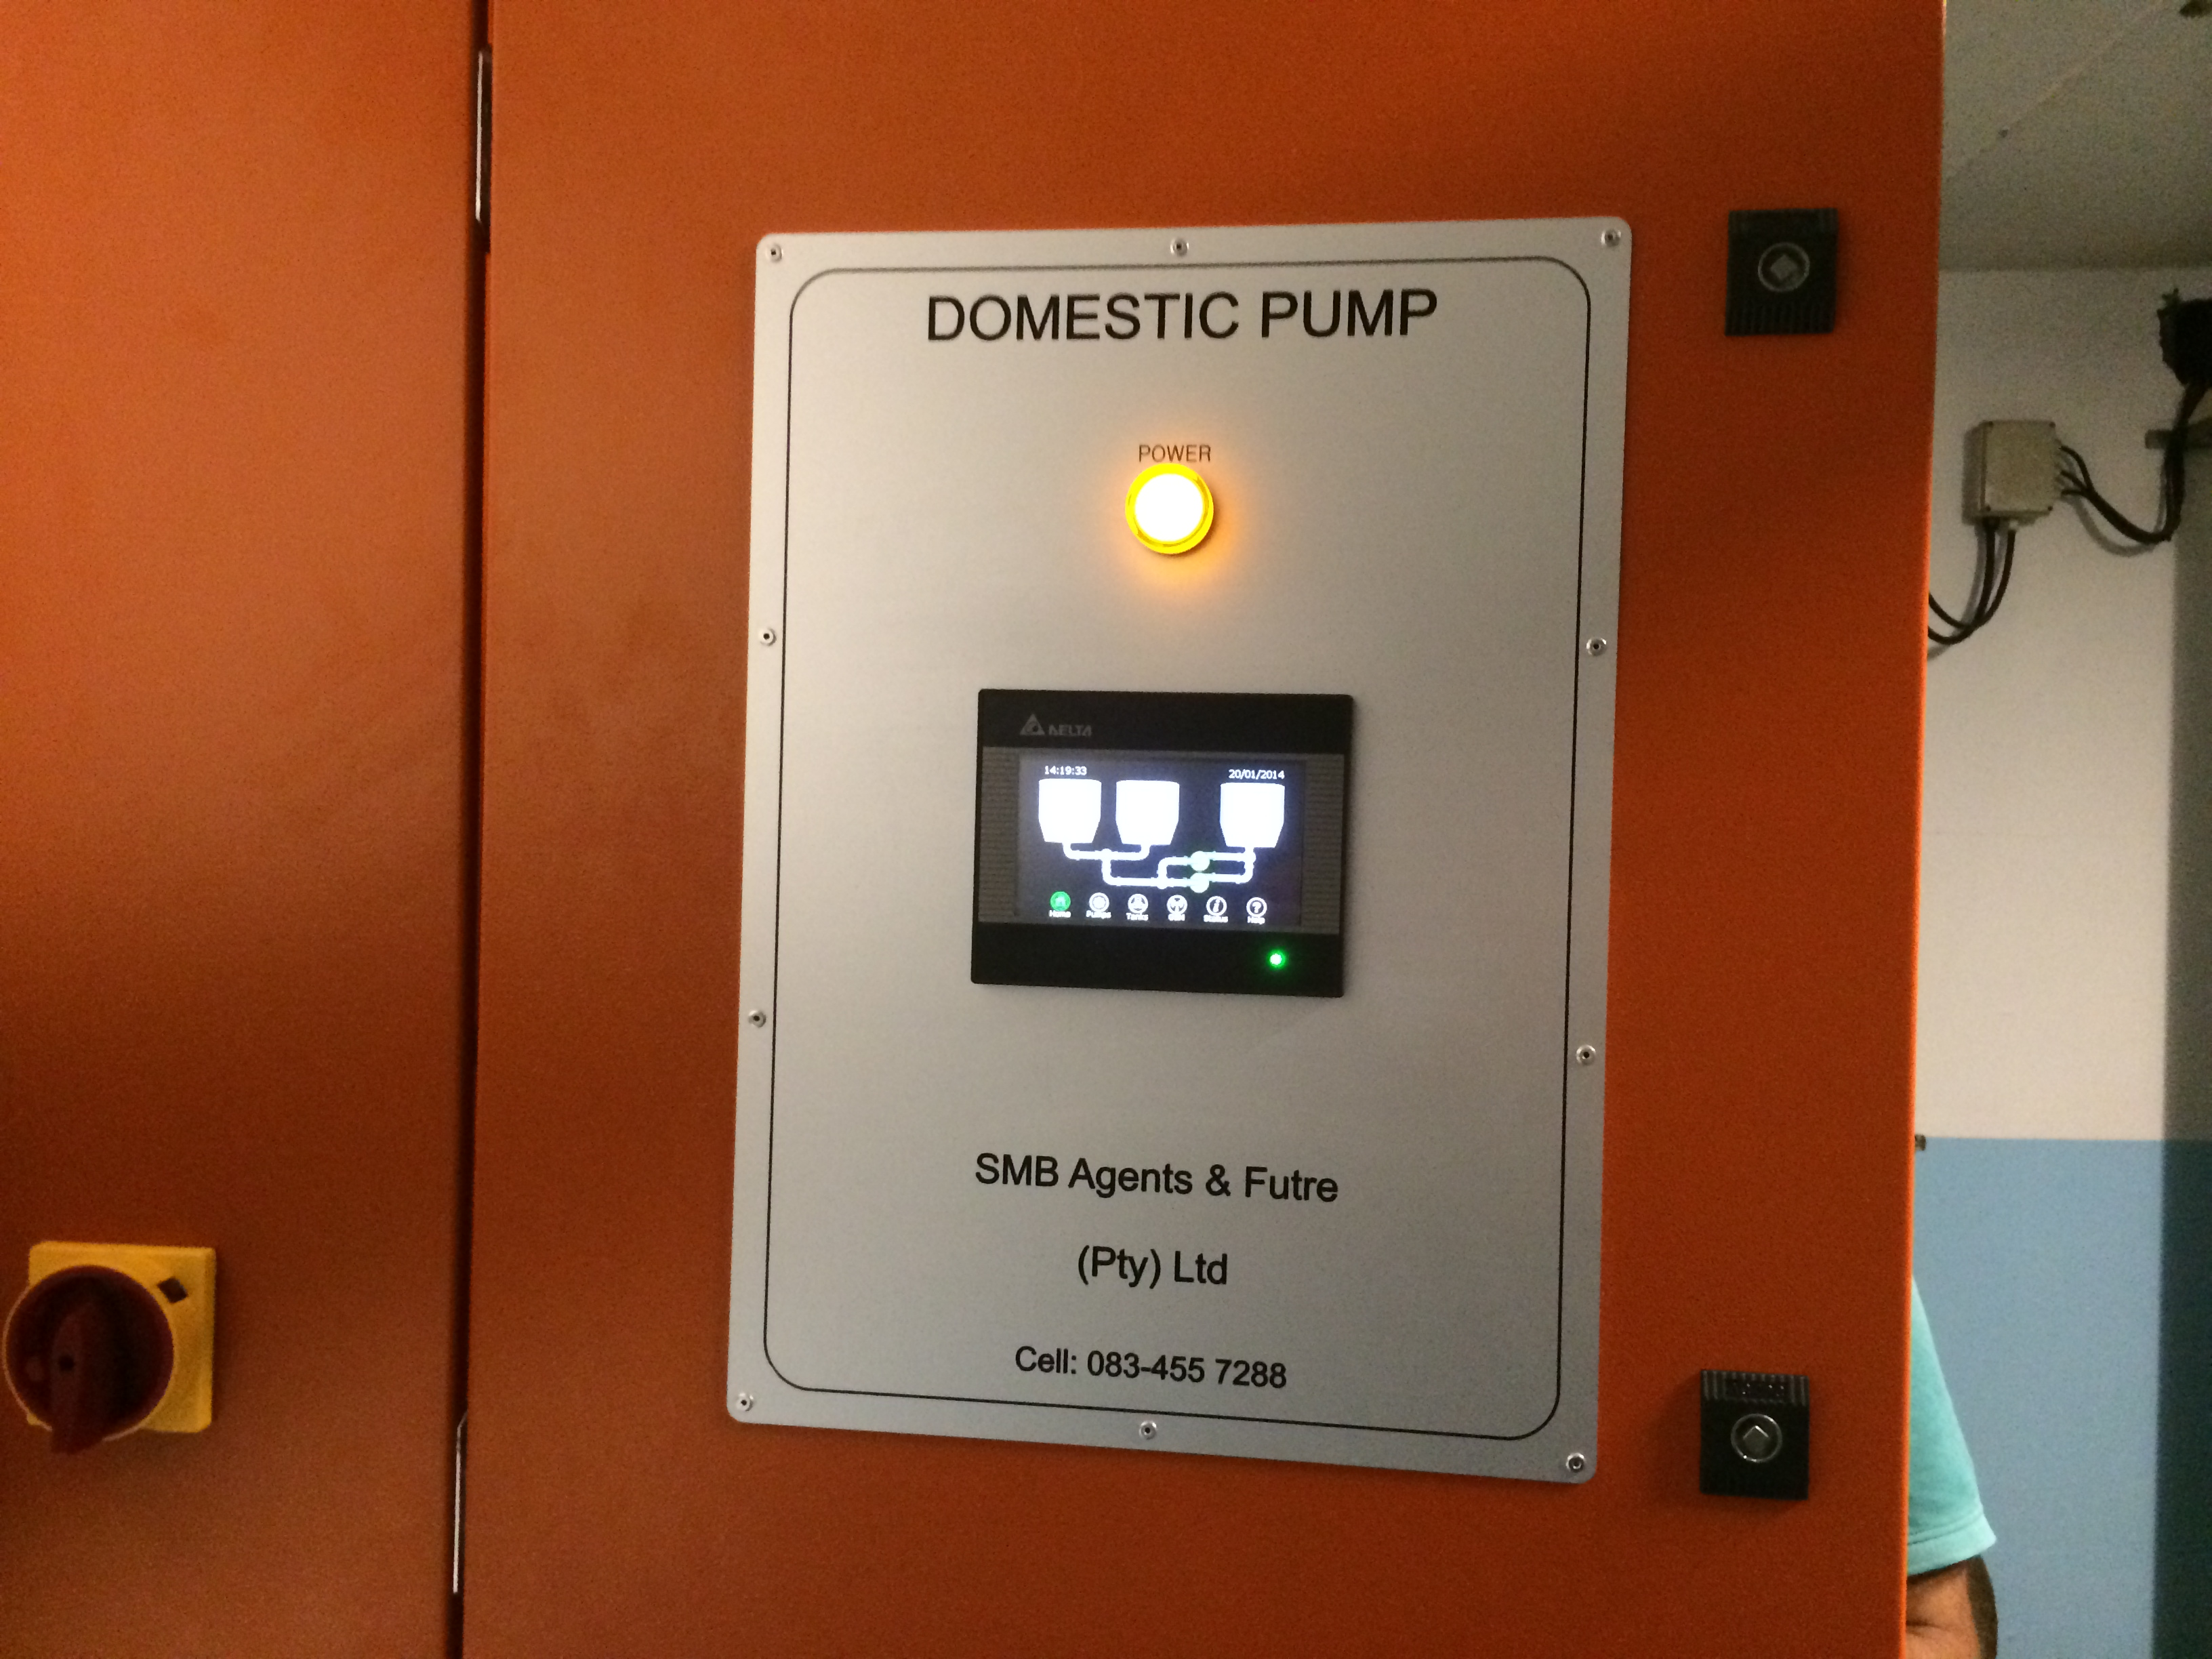 Hotel Domestic Pump Panel